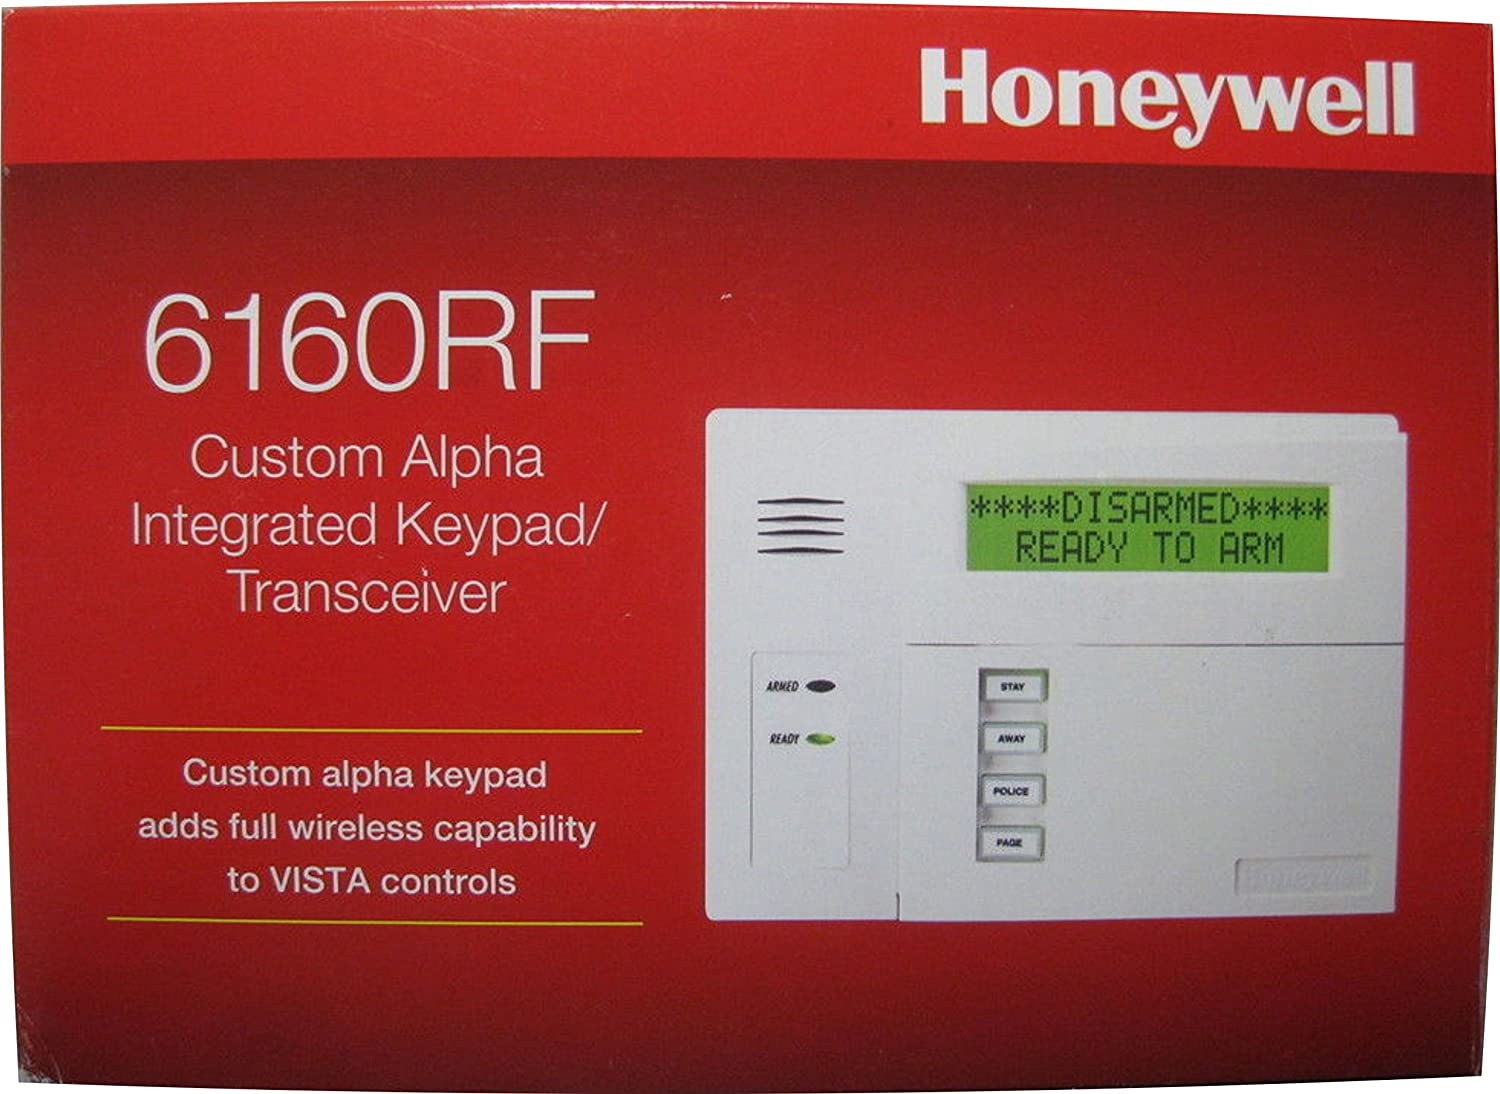 Honeywell 6160RF Custom Alpha Integrated Keyboard/Transceiver